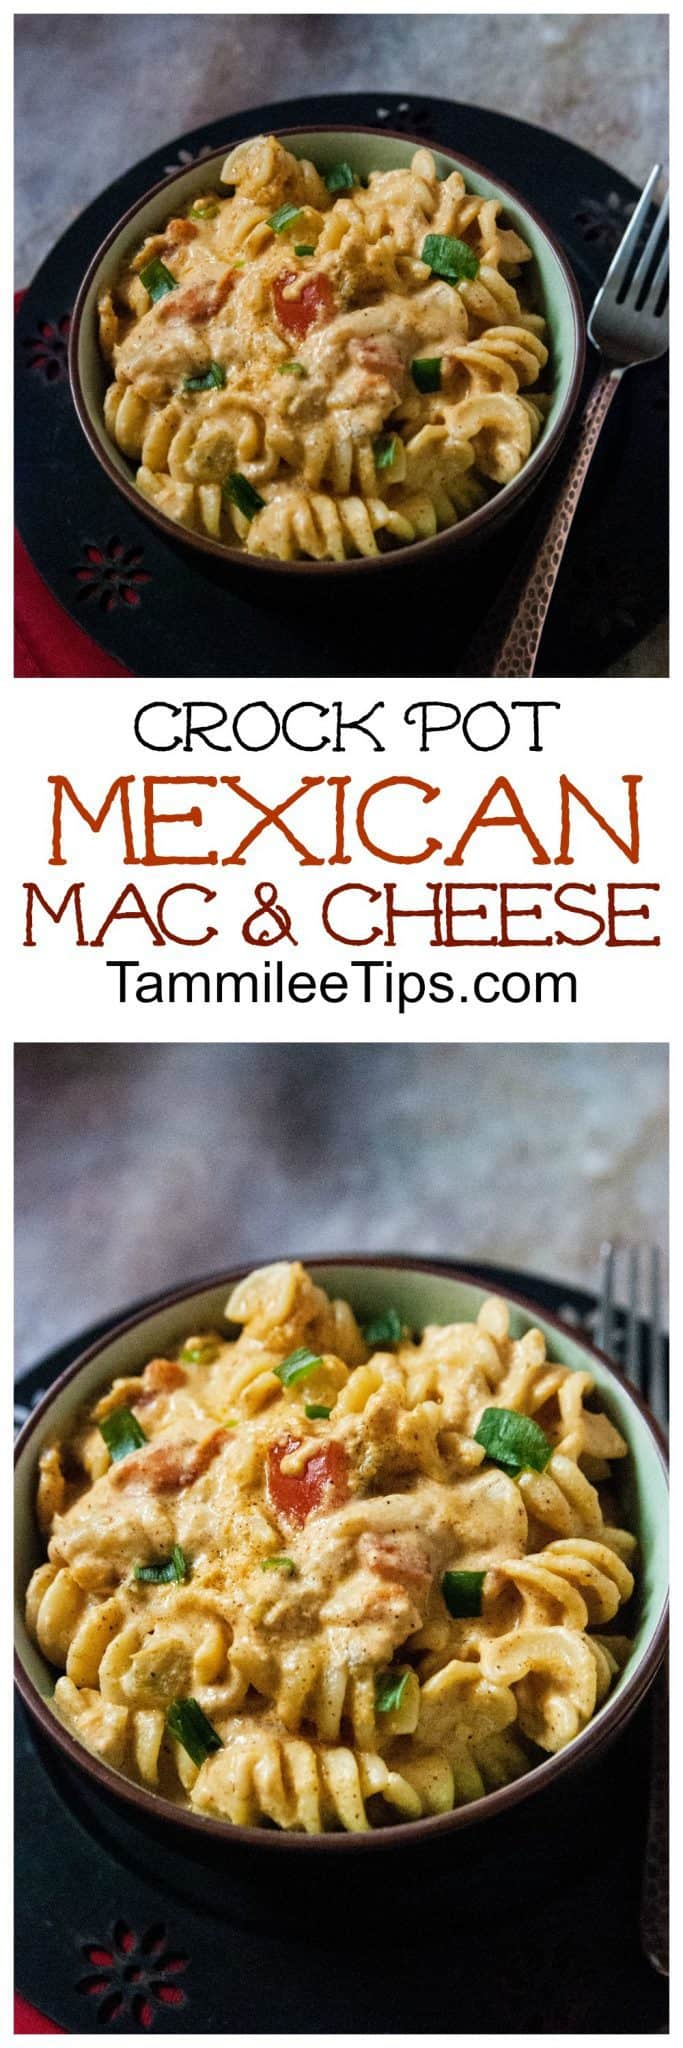 Slow Cooker Crock Pot Mexican Macaroni and Cheese Recipe! The perfect homemade comfort food dinner for the entire family!